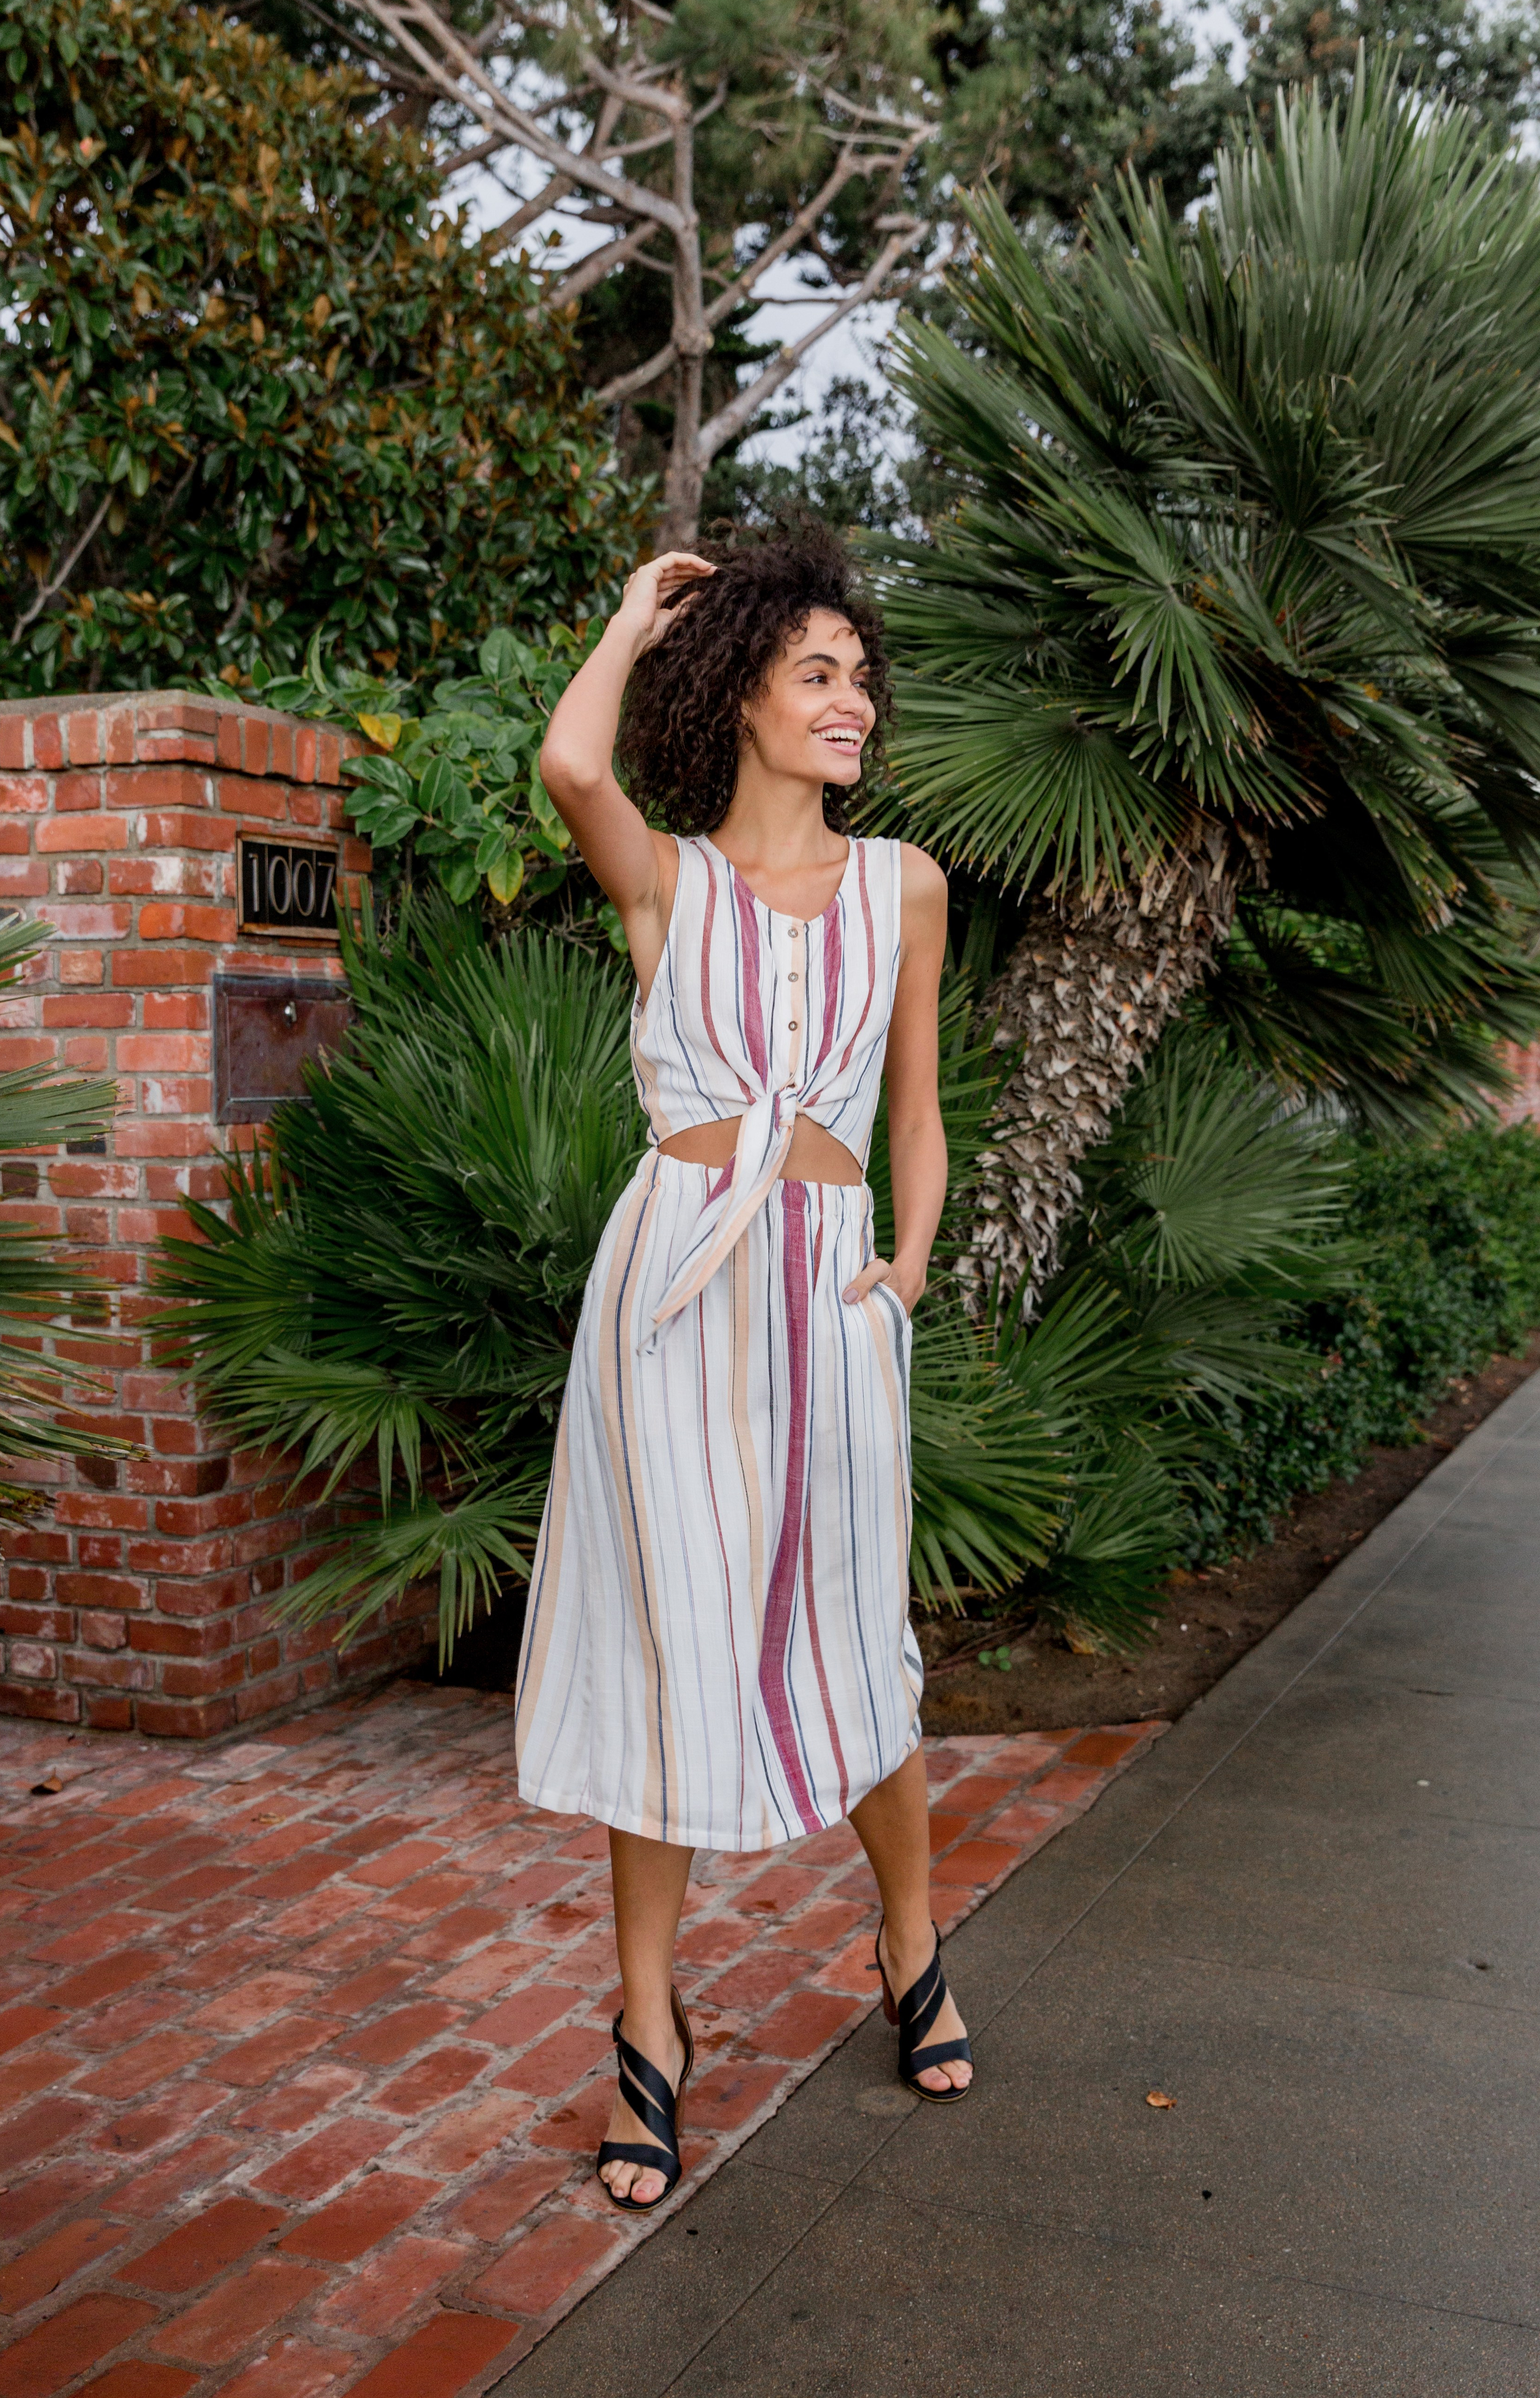 Women's Vacation Outfit from Buckle featuring a RVCA striped dress and Crevo heels sandals